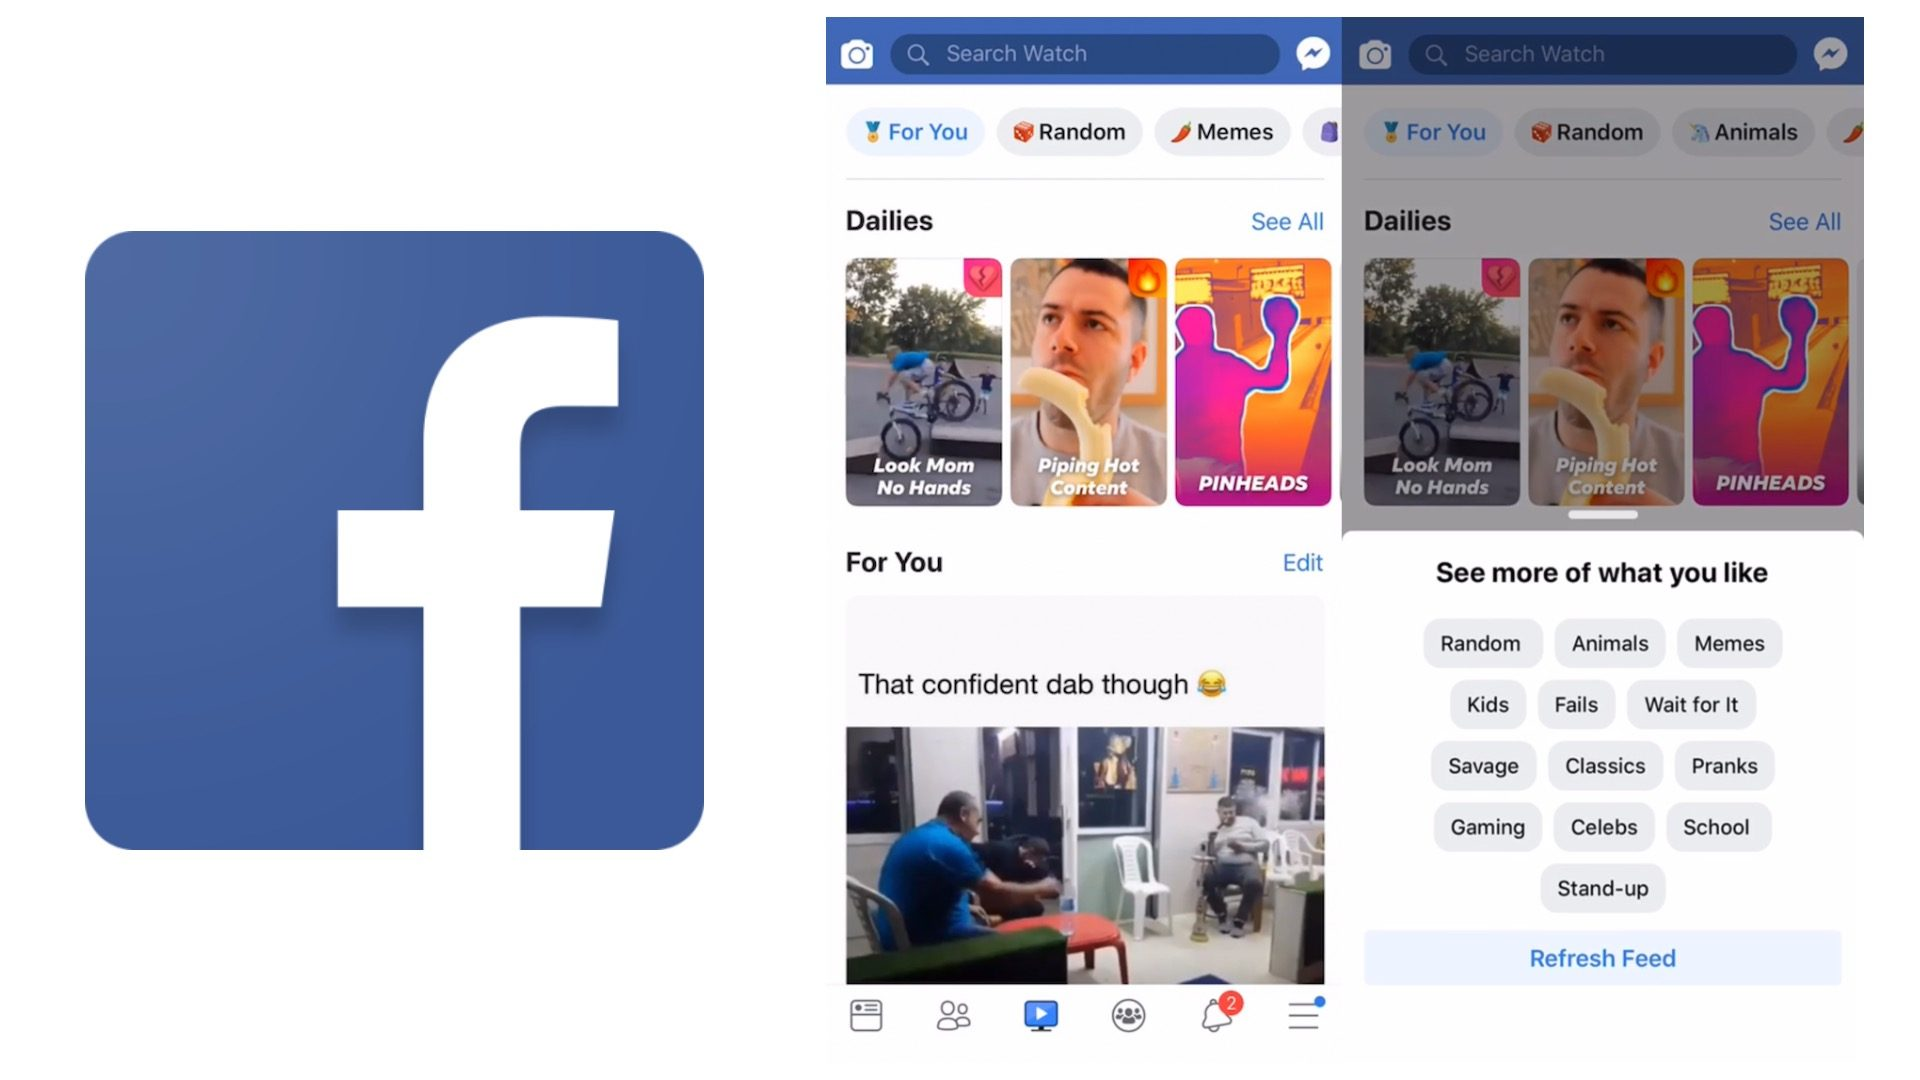 Facebook shutters plans for 'LOL' meme app before it was even released